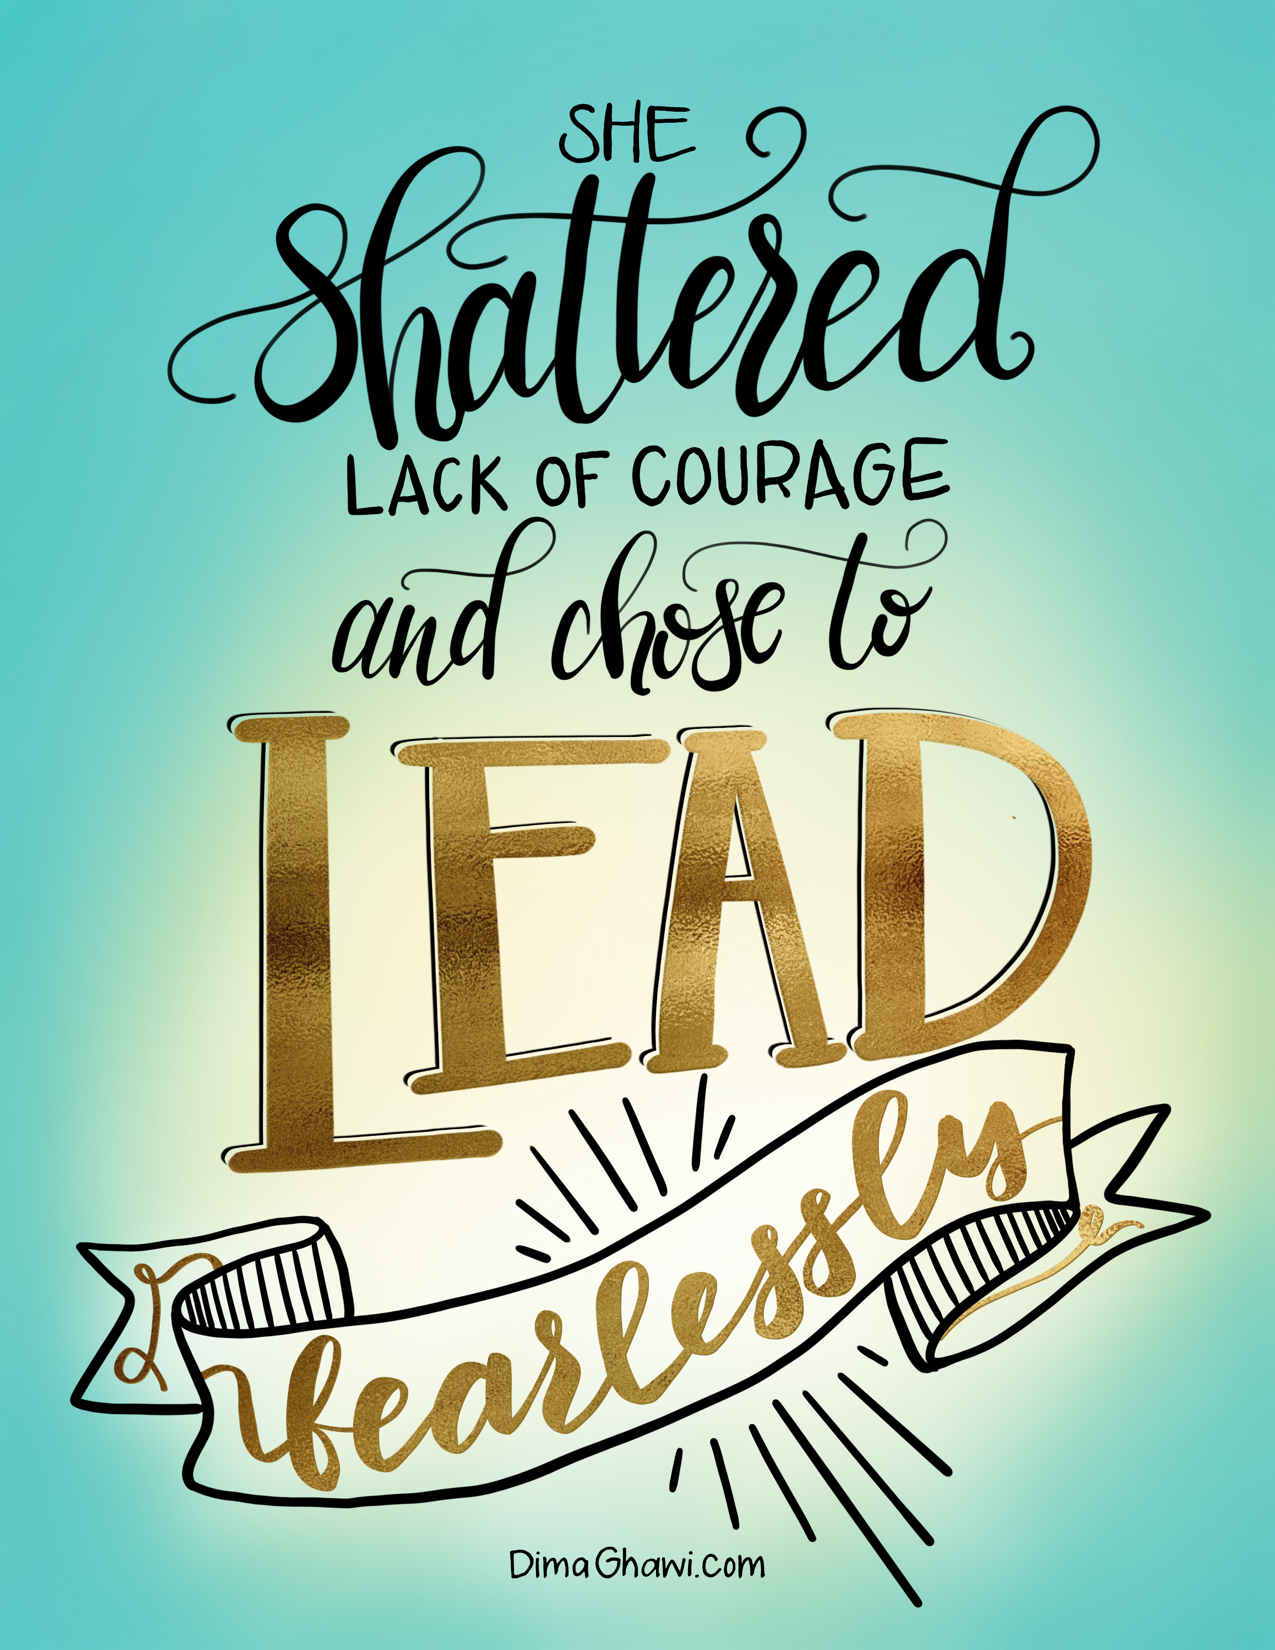 lead fearlessly-small.jpeg